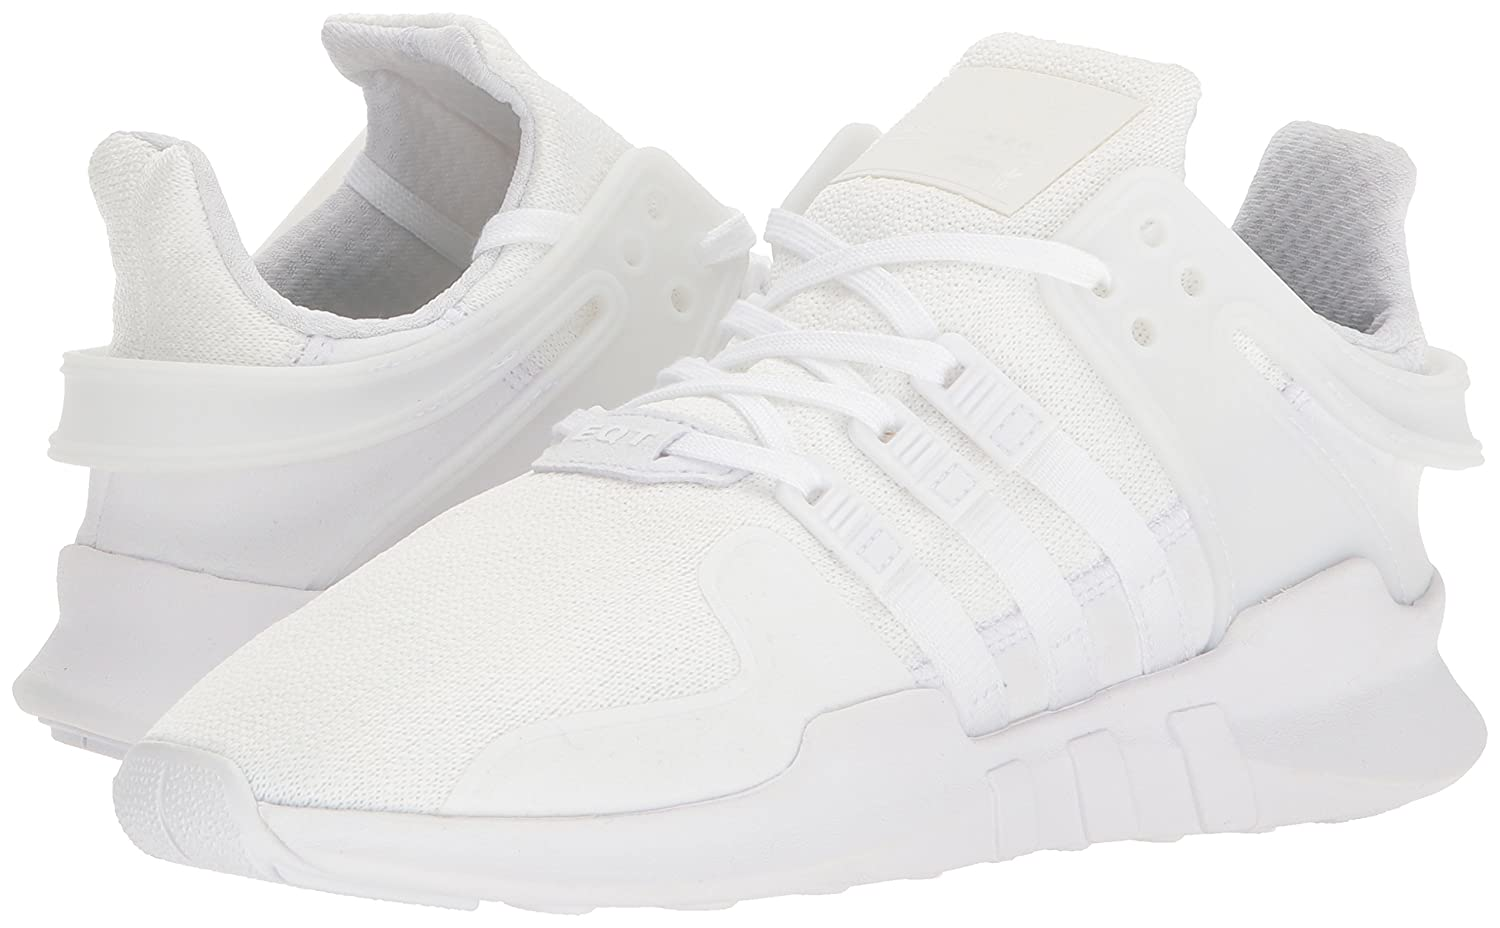 newest collection 7ce22 3a8e1 Amazon.com   adidas Originals Unisex EQT Support ADV J Running Shoe, White,  6.5 M US Big Kid   Sneakers